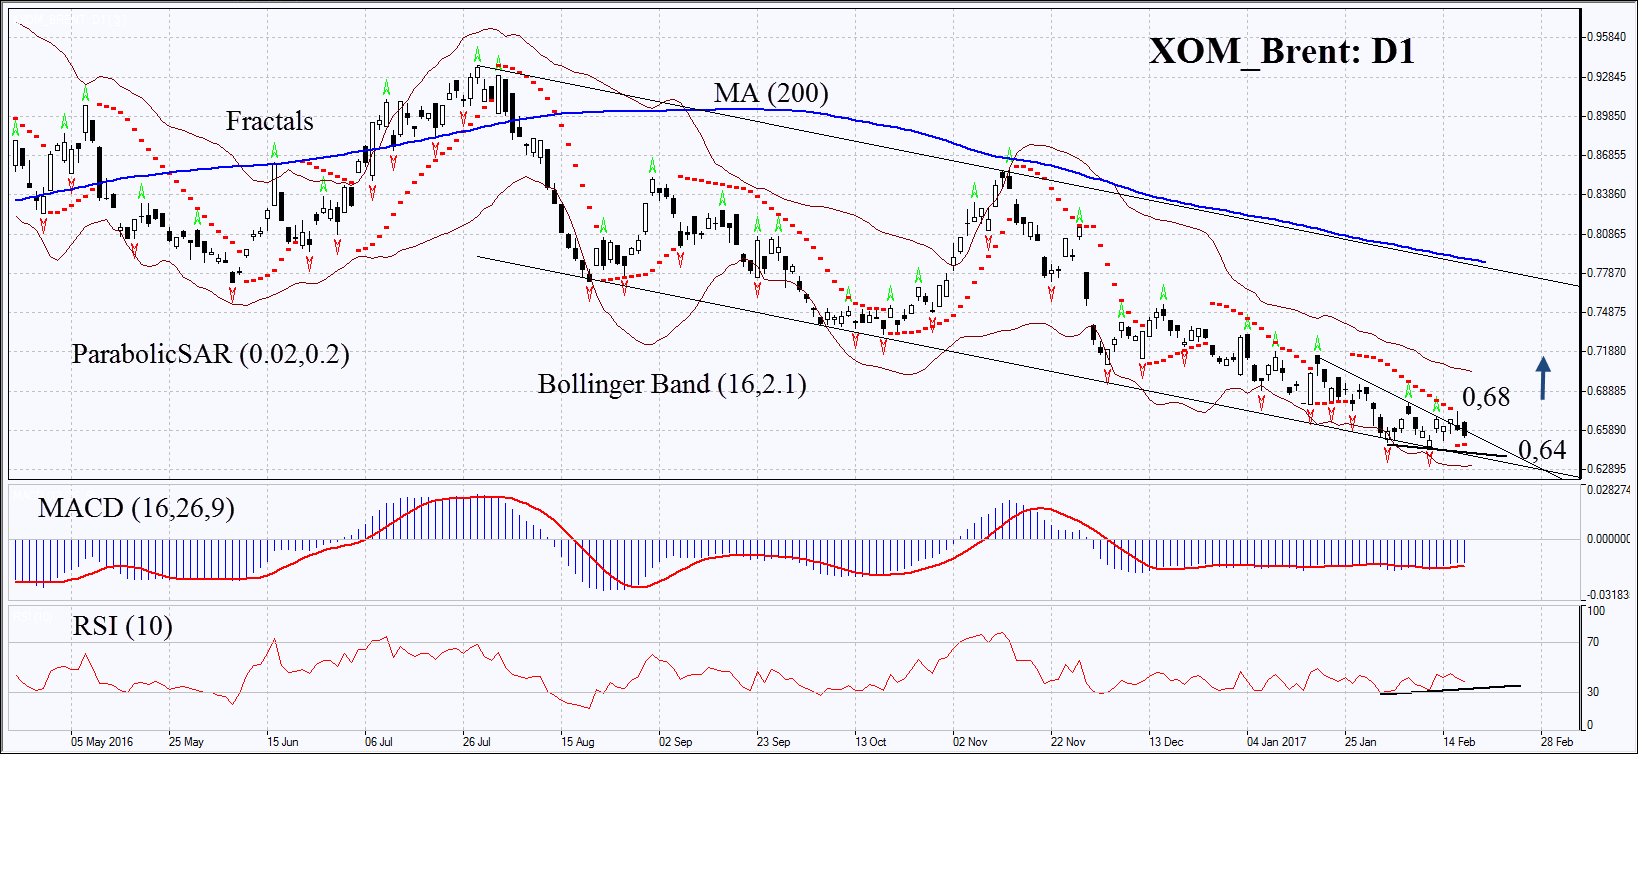 &XOM/BRENT Forecast | Oil price increase may trigger shale